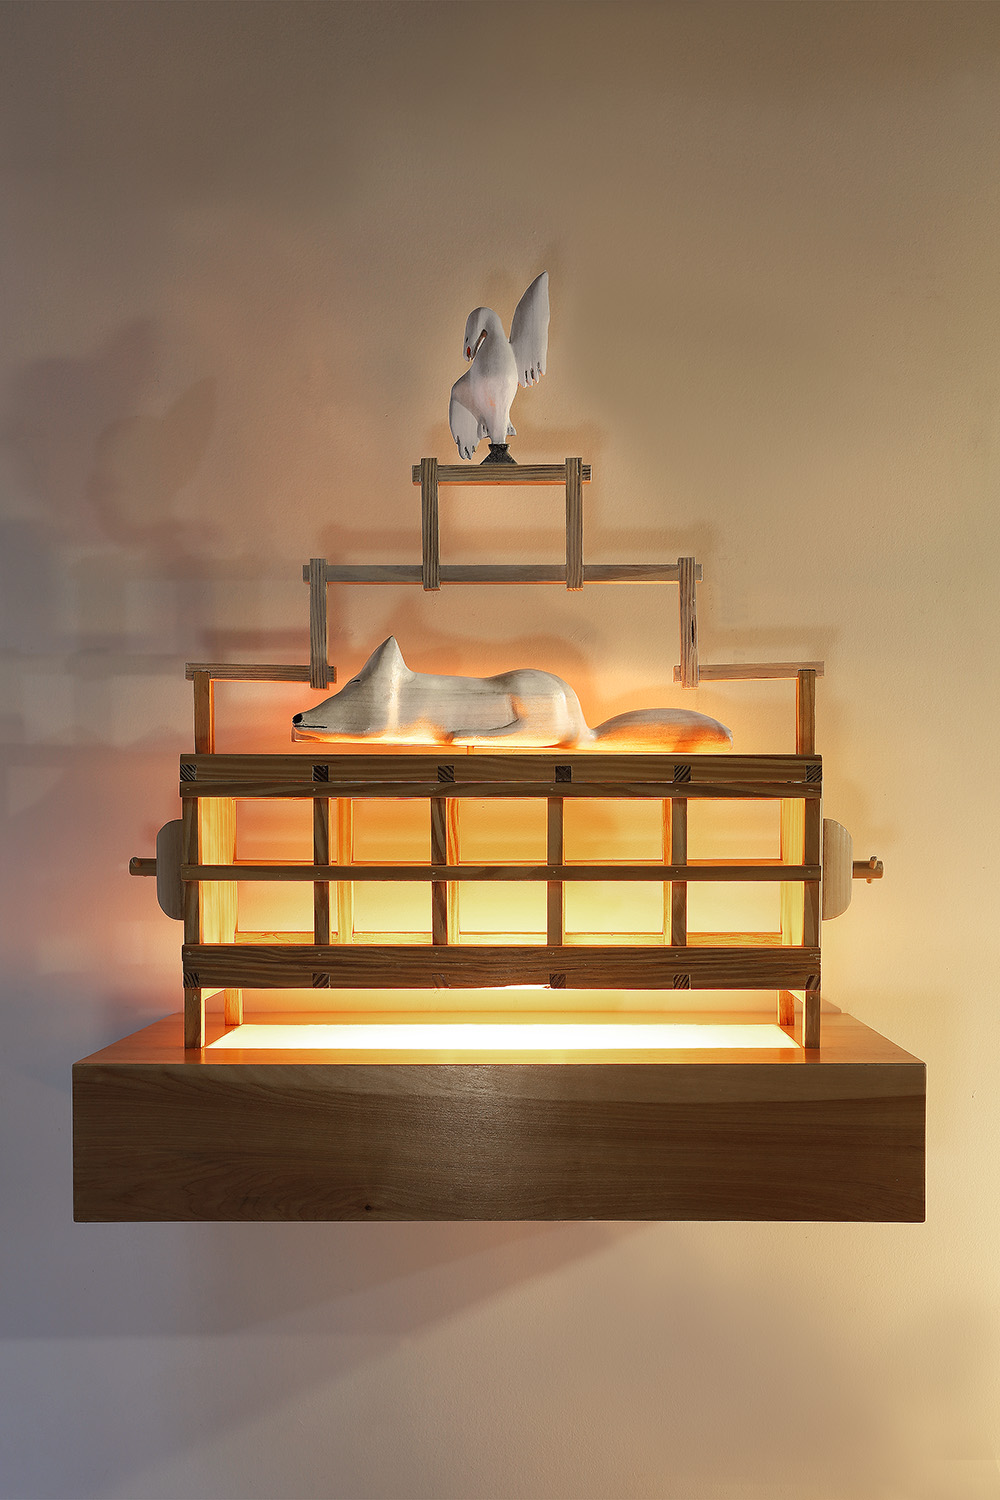 """Fox Trap II"", 33"" h x 27"" w x 12"" d; wood, stain, plexiglass, acrylic paint, LED light; © Tom Gormally 2019"